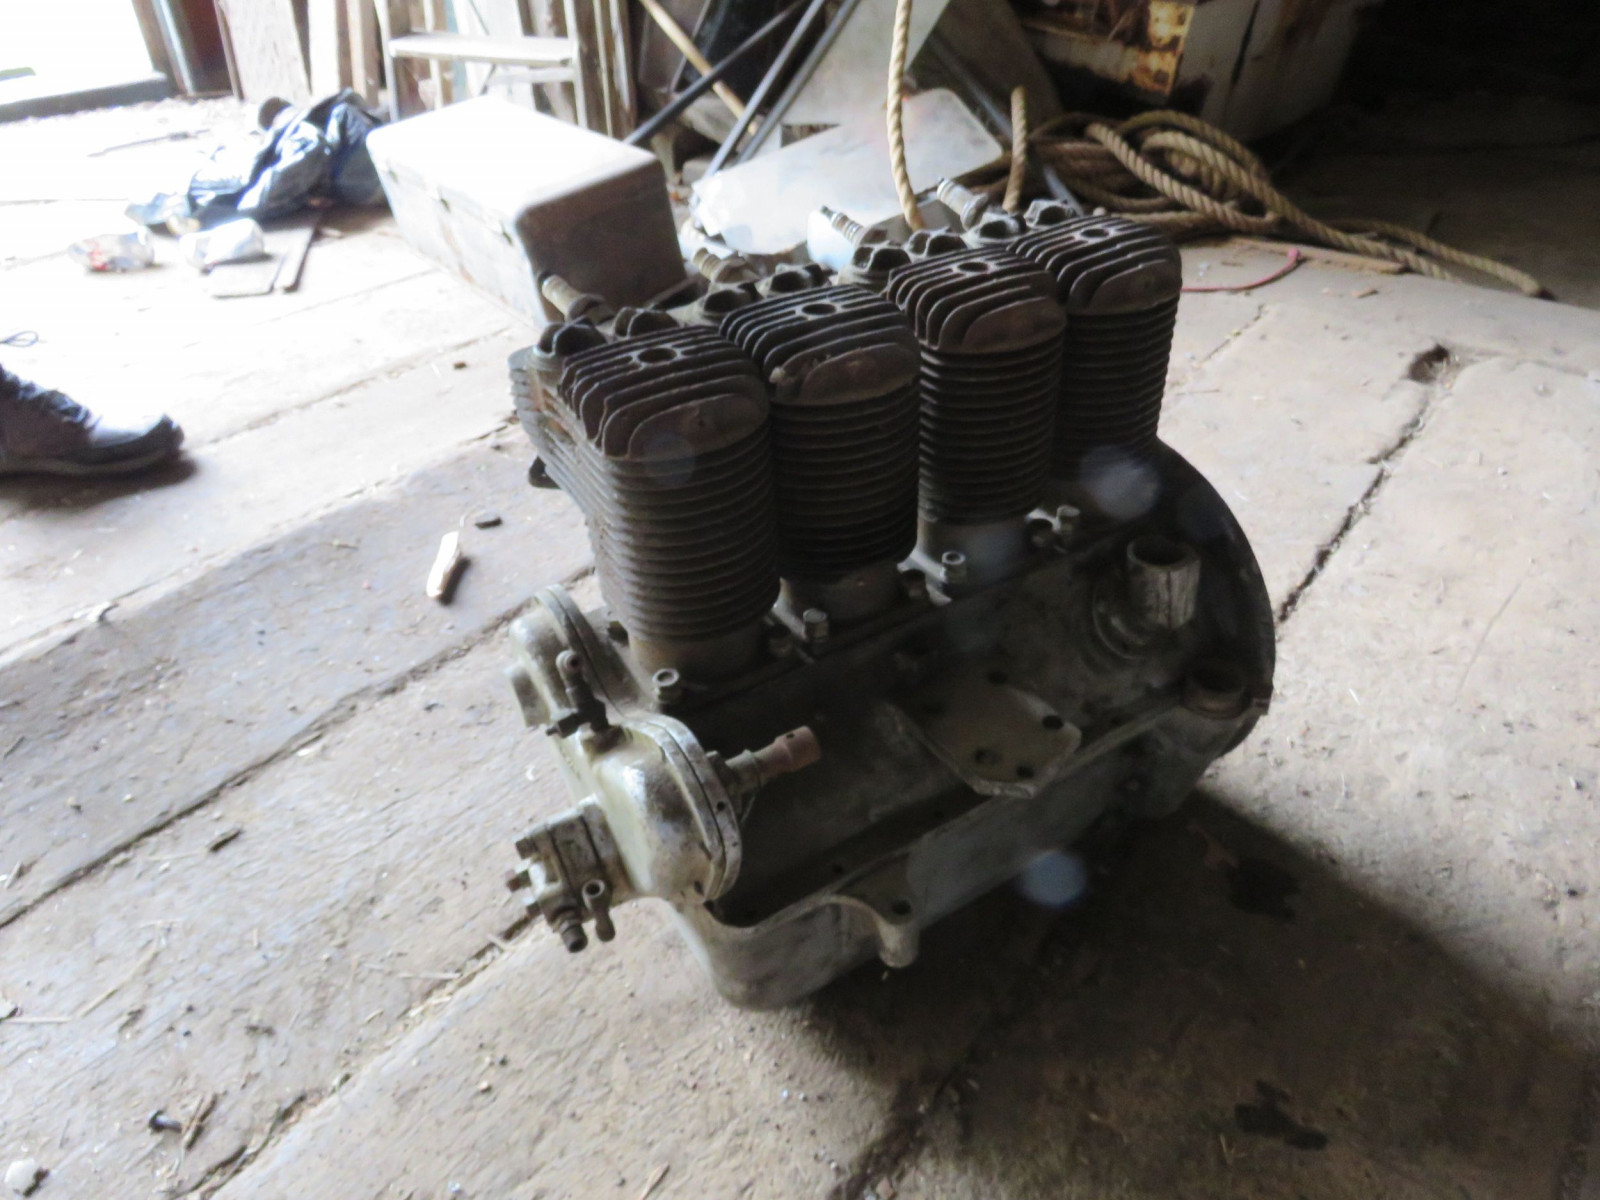 Rare Henderson Motorcycle Cutaway 4 cylinder motor - Image 3